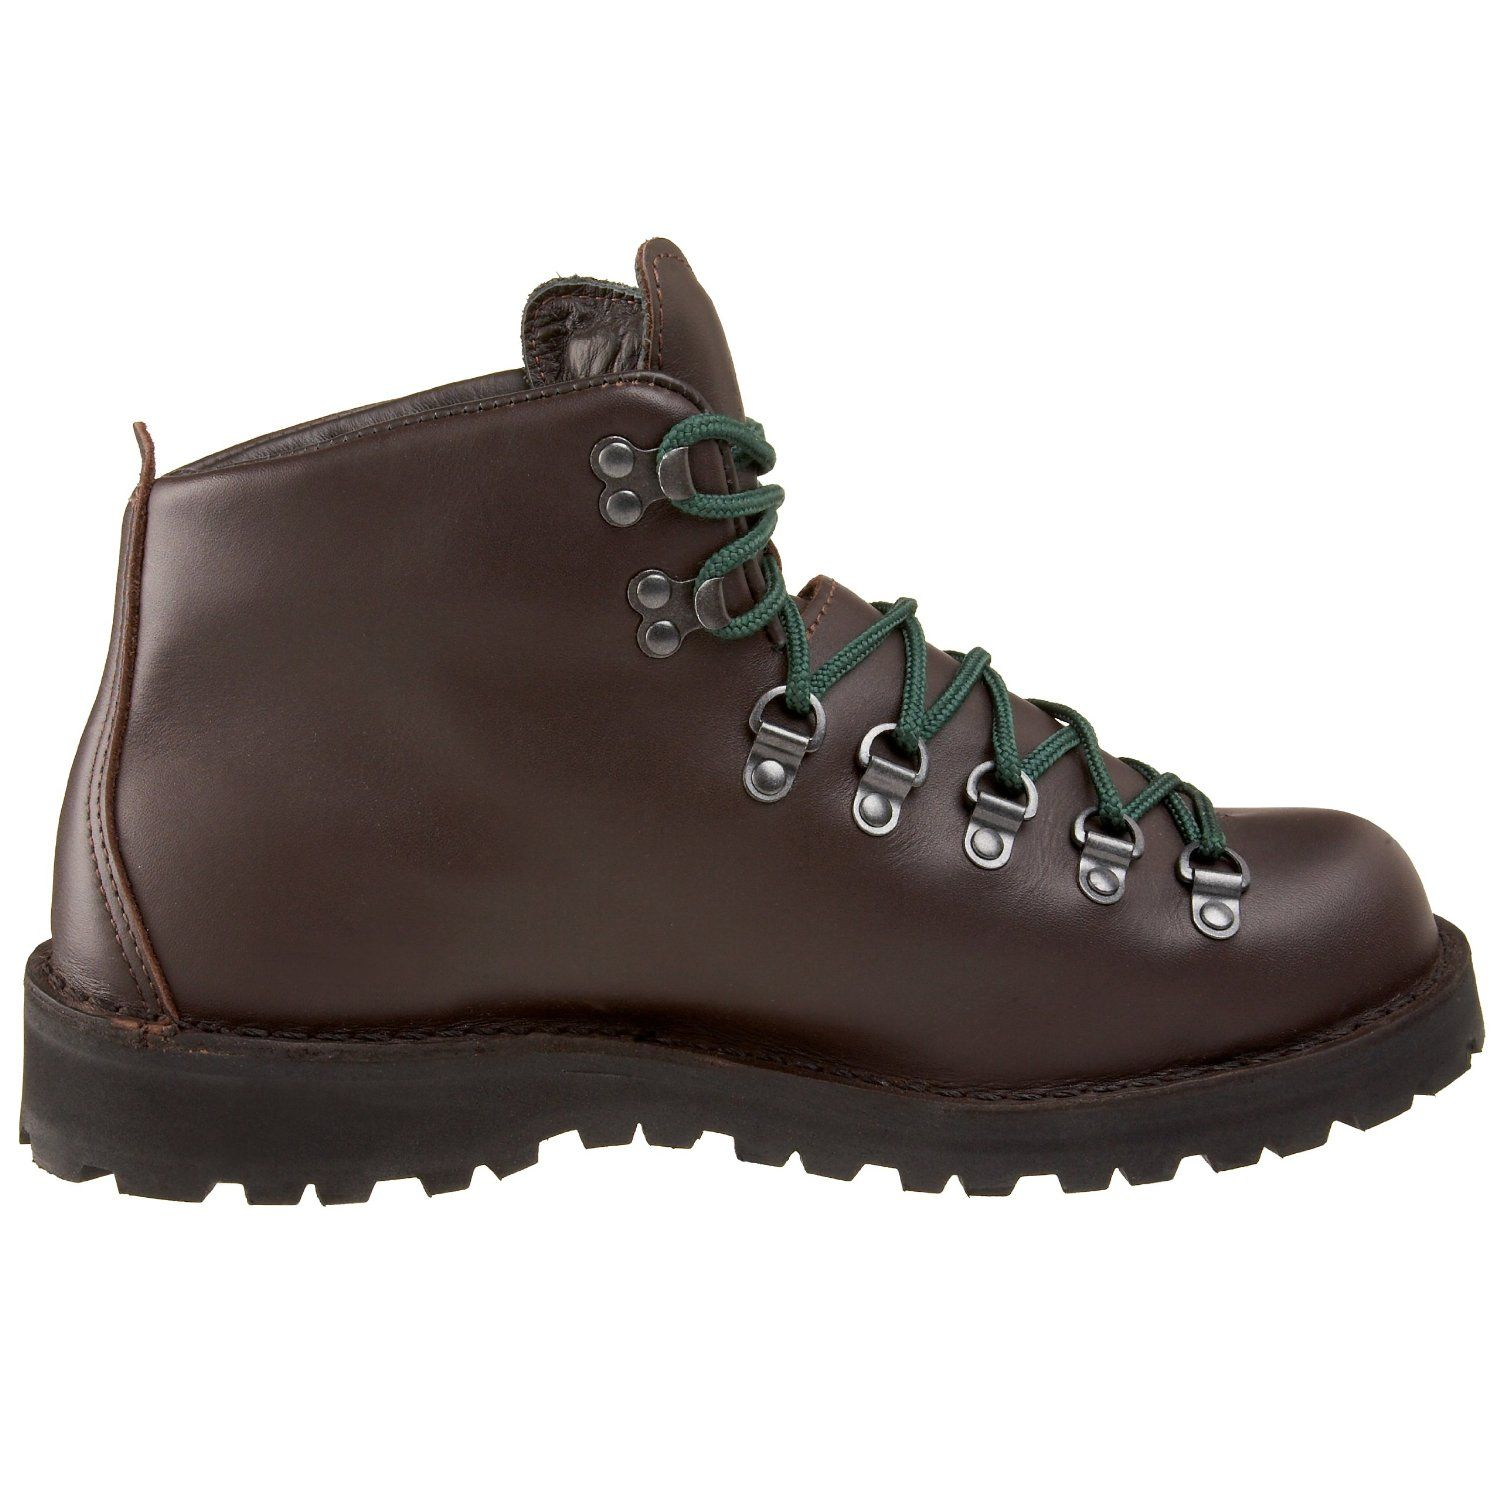 16fe6893f32 Limmer Boots Backpacker Shop Spot | limmer boots | Hiking boots ...